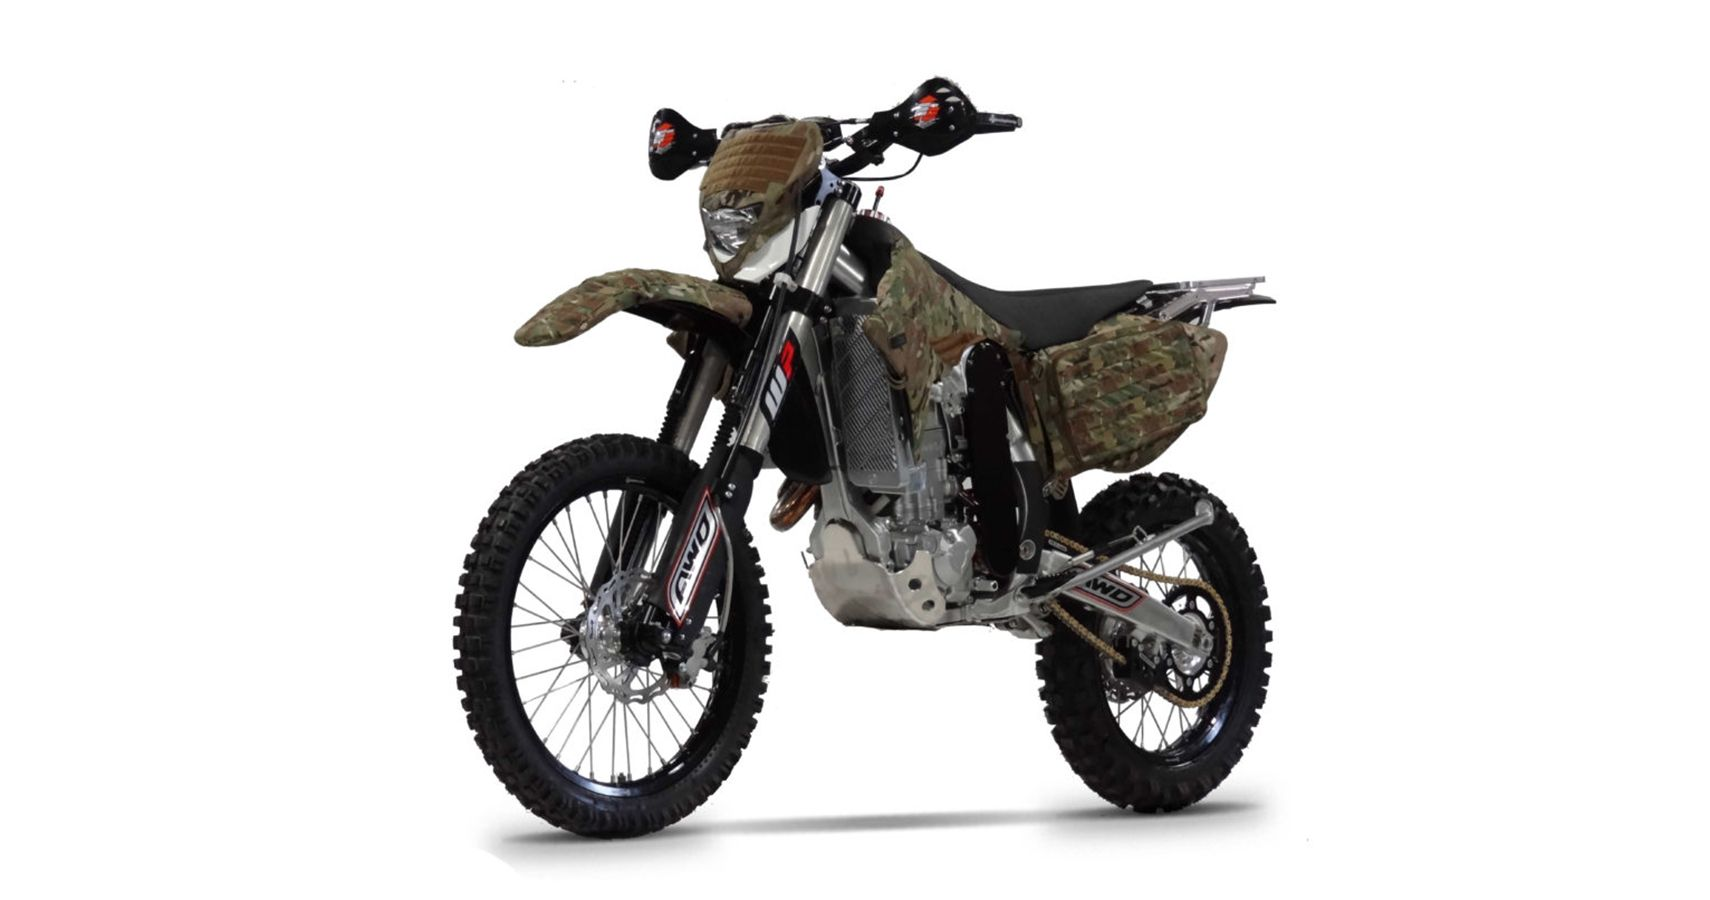 The U.S. Navy Seals' Christini AWD Military Bike Can Be Yours